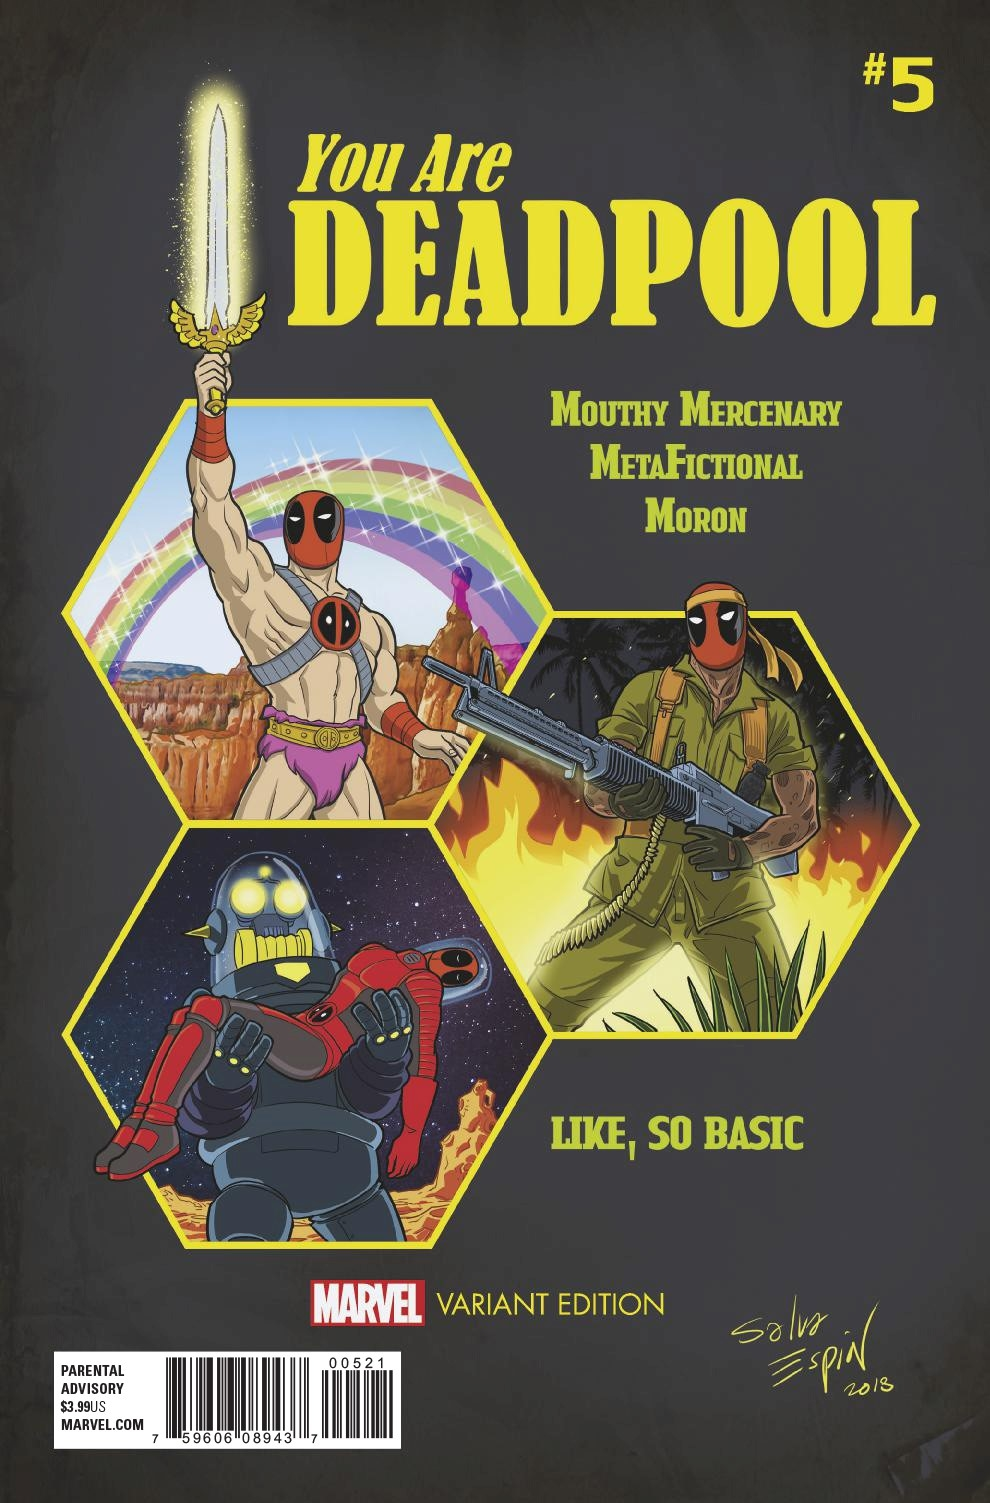 YOU ARE DEADPOOL #5 (OF 5) ESPIN RPG VAR